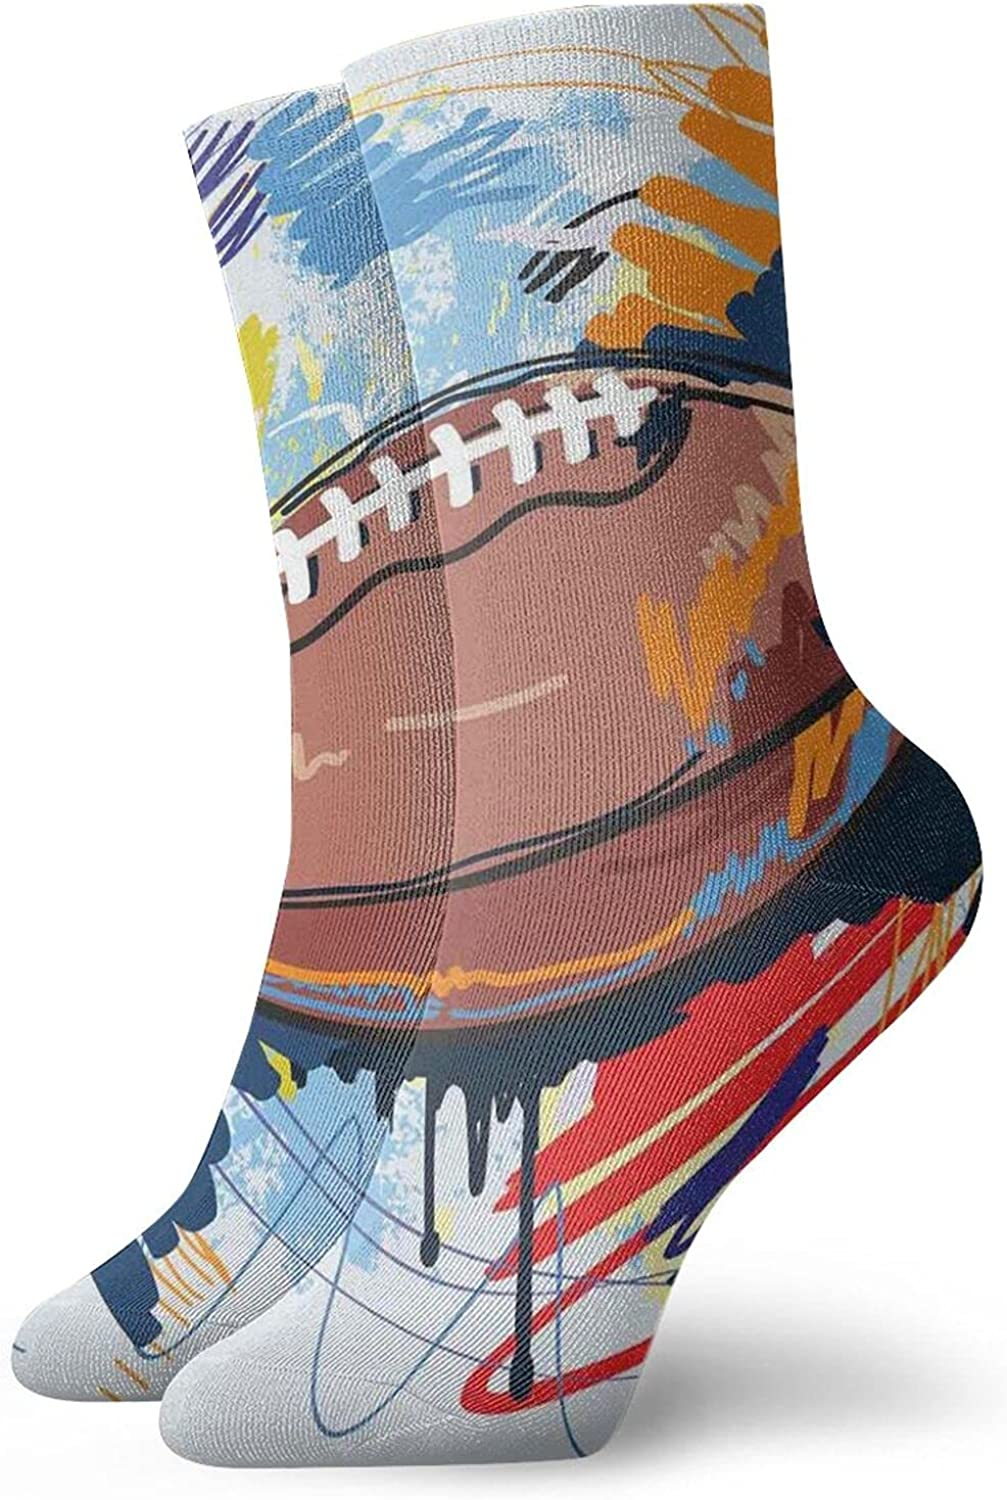 Compression High Socks-Diamond Shape Rugby Ball Sketch With Colorful Doodles Professional Equipment League Best for Running,Athletic,Hiking,Travel,Flight